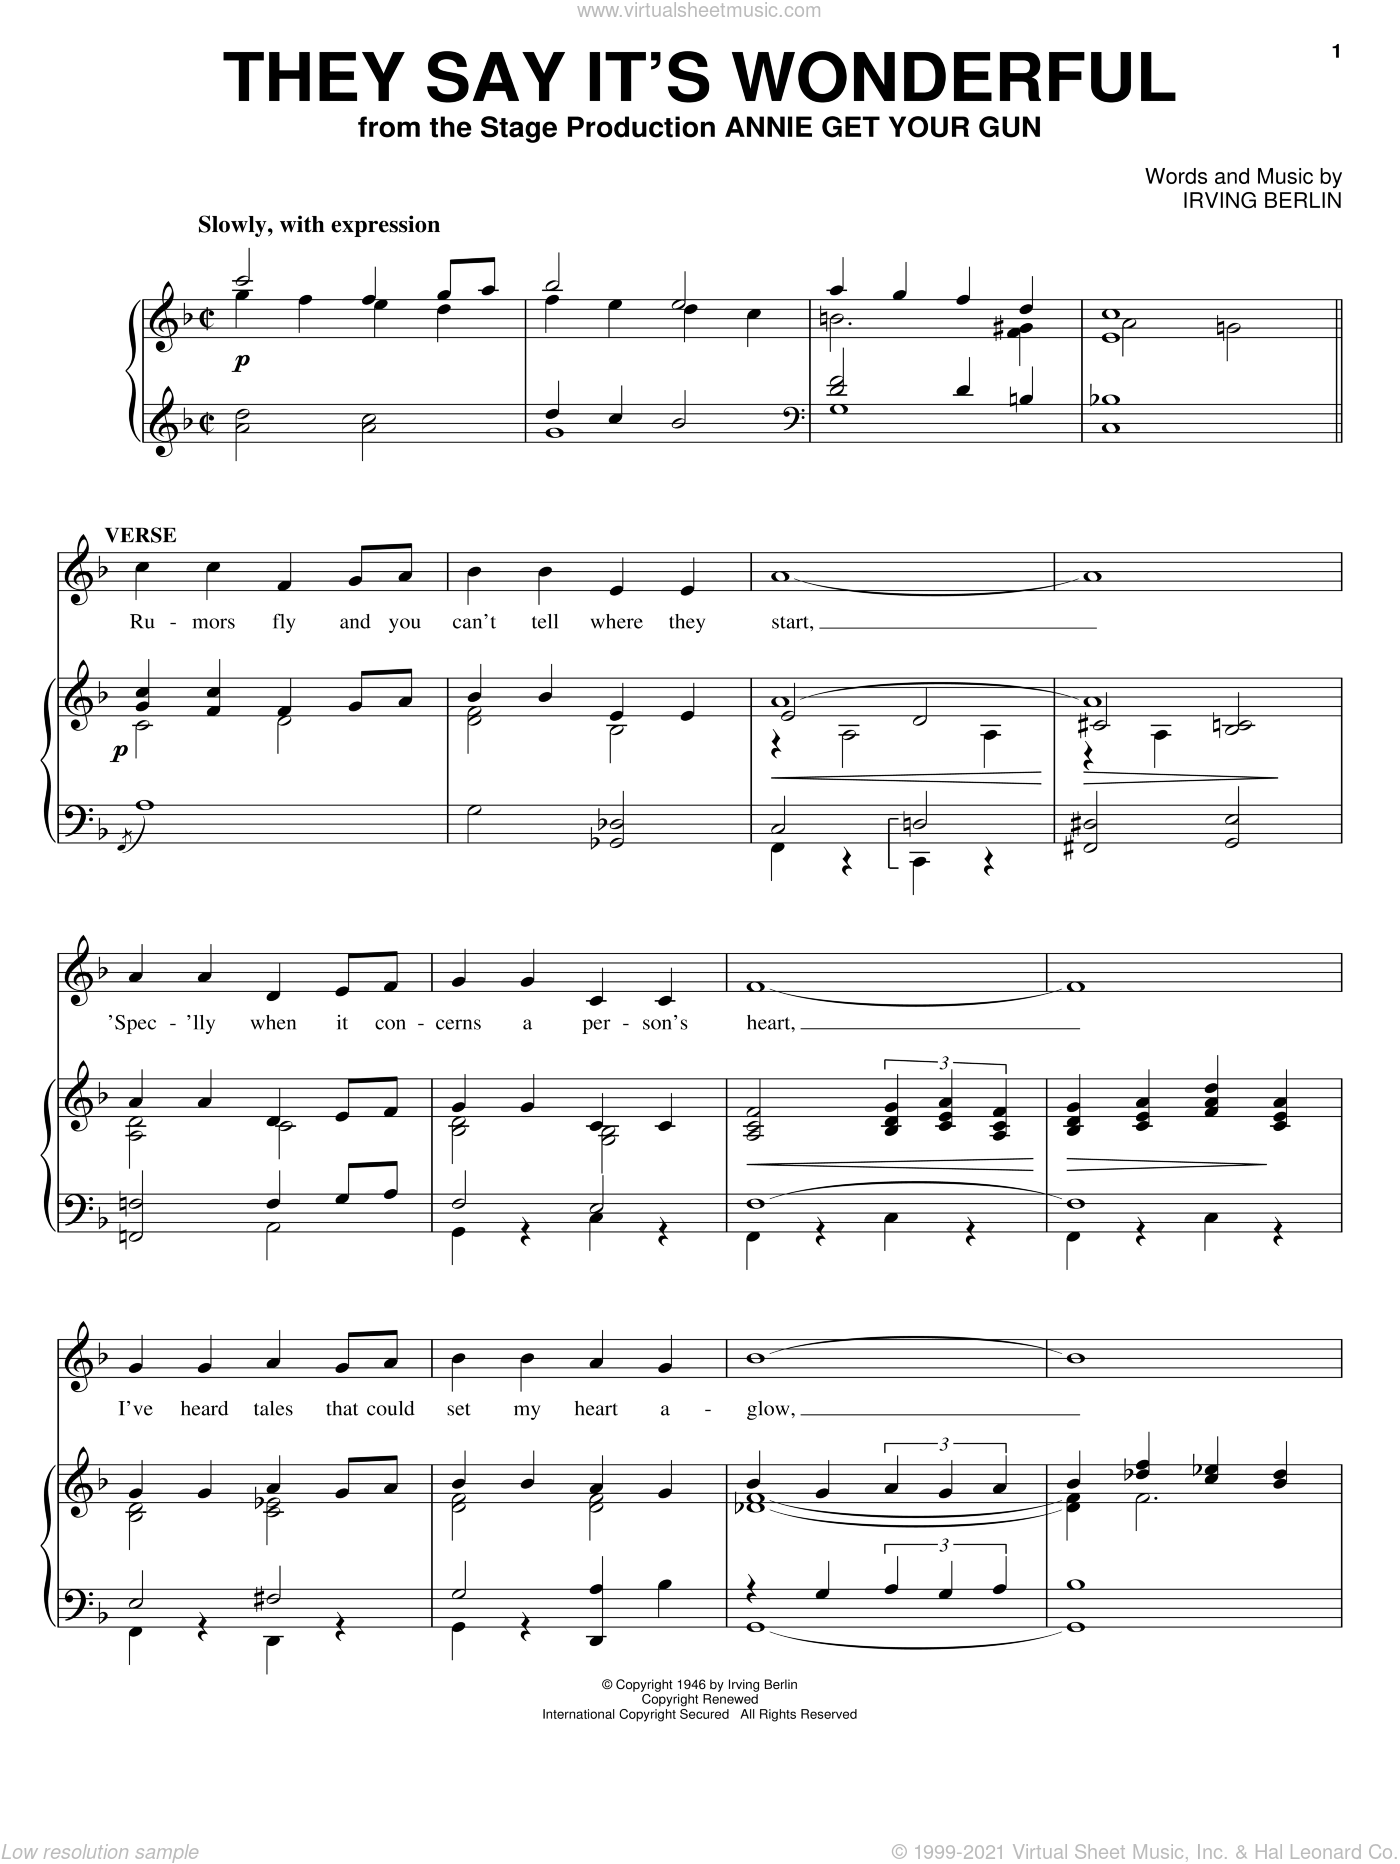 They Say It's Wonderful sheet music for voice and piano by Irving Berlin and Annie Get Your Gun (Musical), intermediate skill level